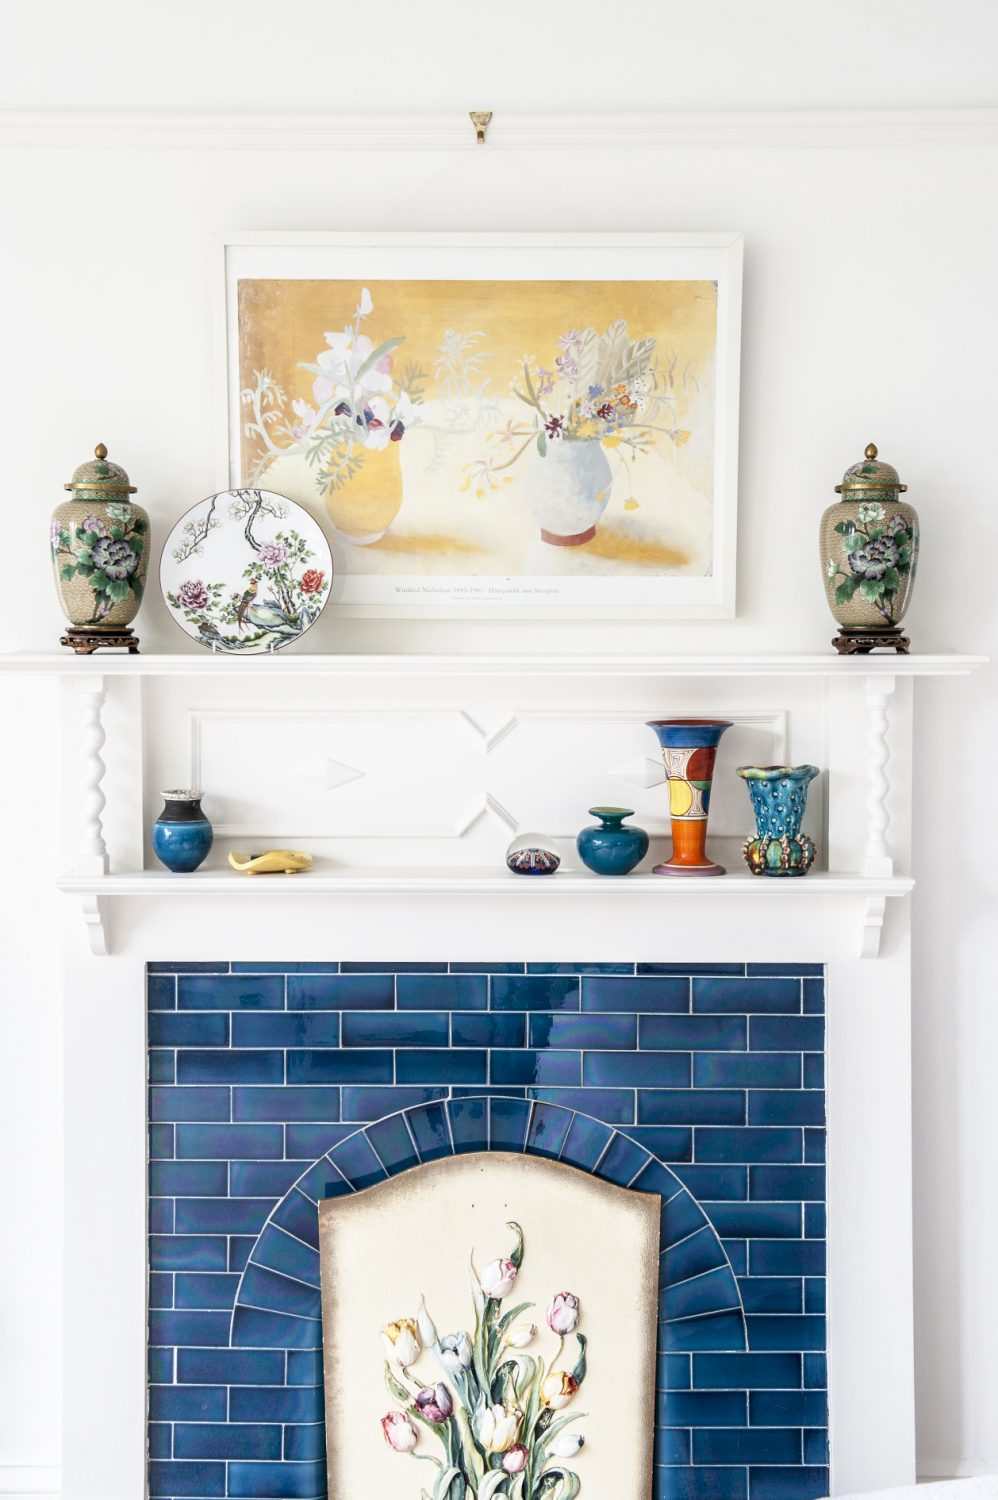 The tiled fireplace in the master bedroom